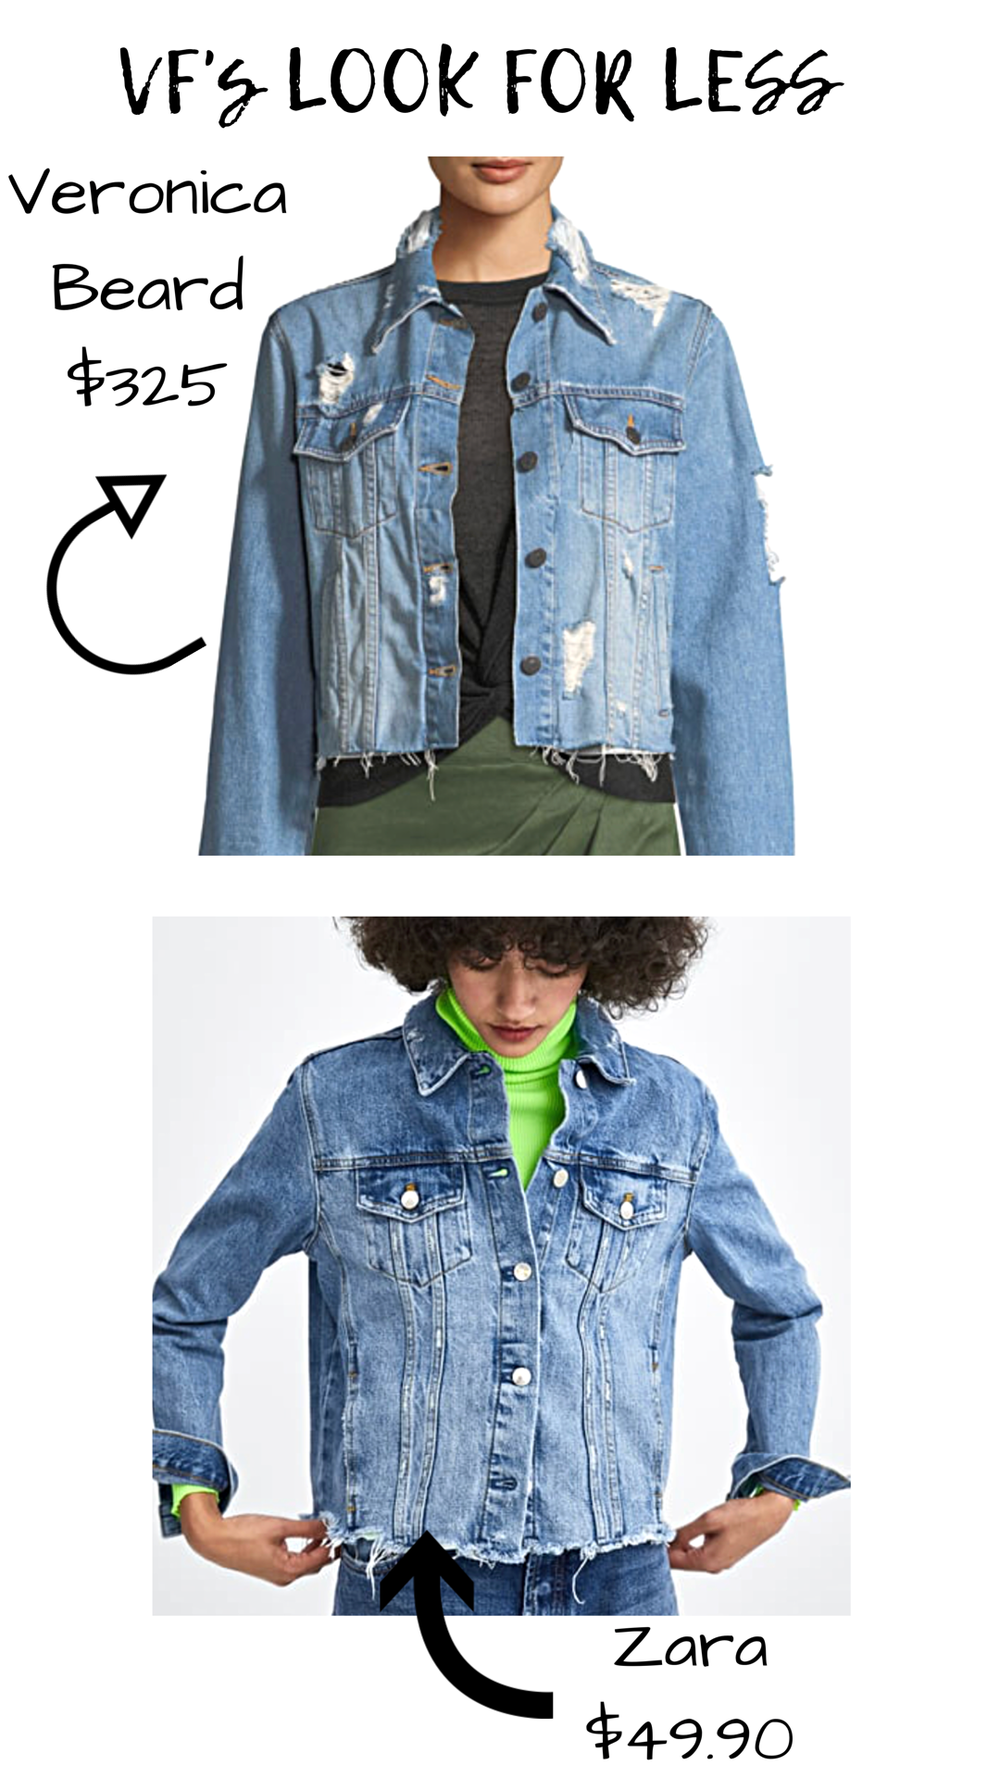 LOOK:  https://www.neimanmarcus.com/p/veronica-beard-cara-cropped-distressed-jean-jacket-prod208830223?icid=&searchType=MAIN&rte=%2Fsearch.jsp%3Ffrom%3DbrSearch%26request_type%3Dsearch%26search_type%3Dkeyword%26q%3Ddenim+jacket&eItemId=prod208830223&cmCat=search&tc=124&currentItemCount=114&q=denim+jacket&searchURL=/search.jsp%3Ffrom%3DbrSearch%26start%3D0%26rows%3D30%26q%3Ddenim+jacket%26l%3Ddenim+jacket%26request_type%3Dsearch%26search_type%3Dkeyword   FOR LESS:  https://m.zara.com/us/en/authentic-denim-ripped-jacket-p05252215.html?v1=6452704&v2=1080509